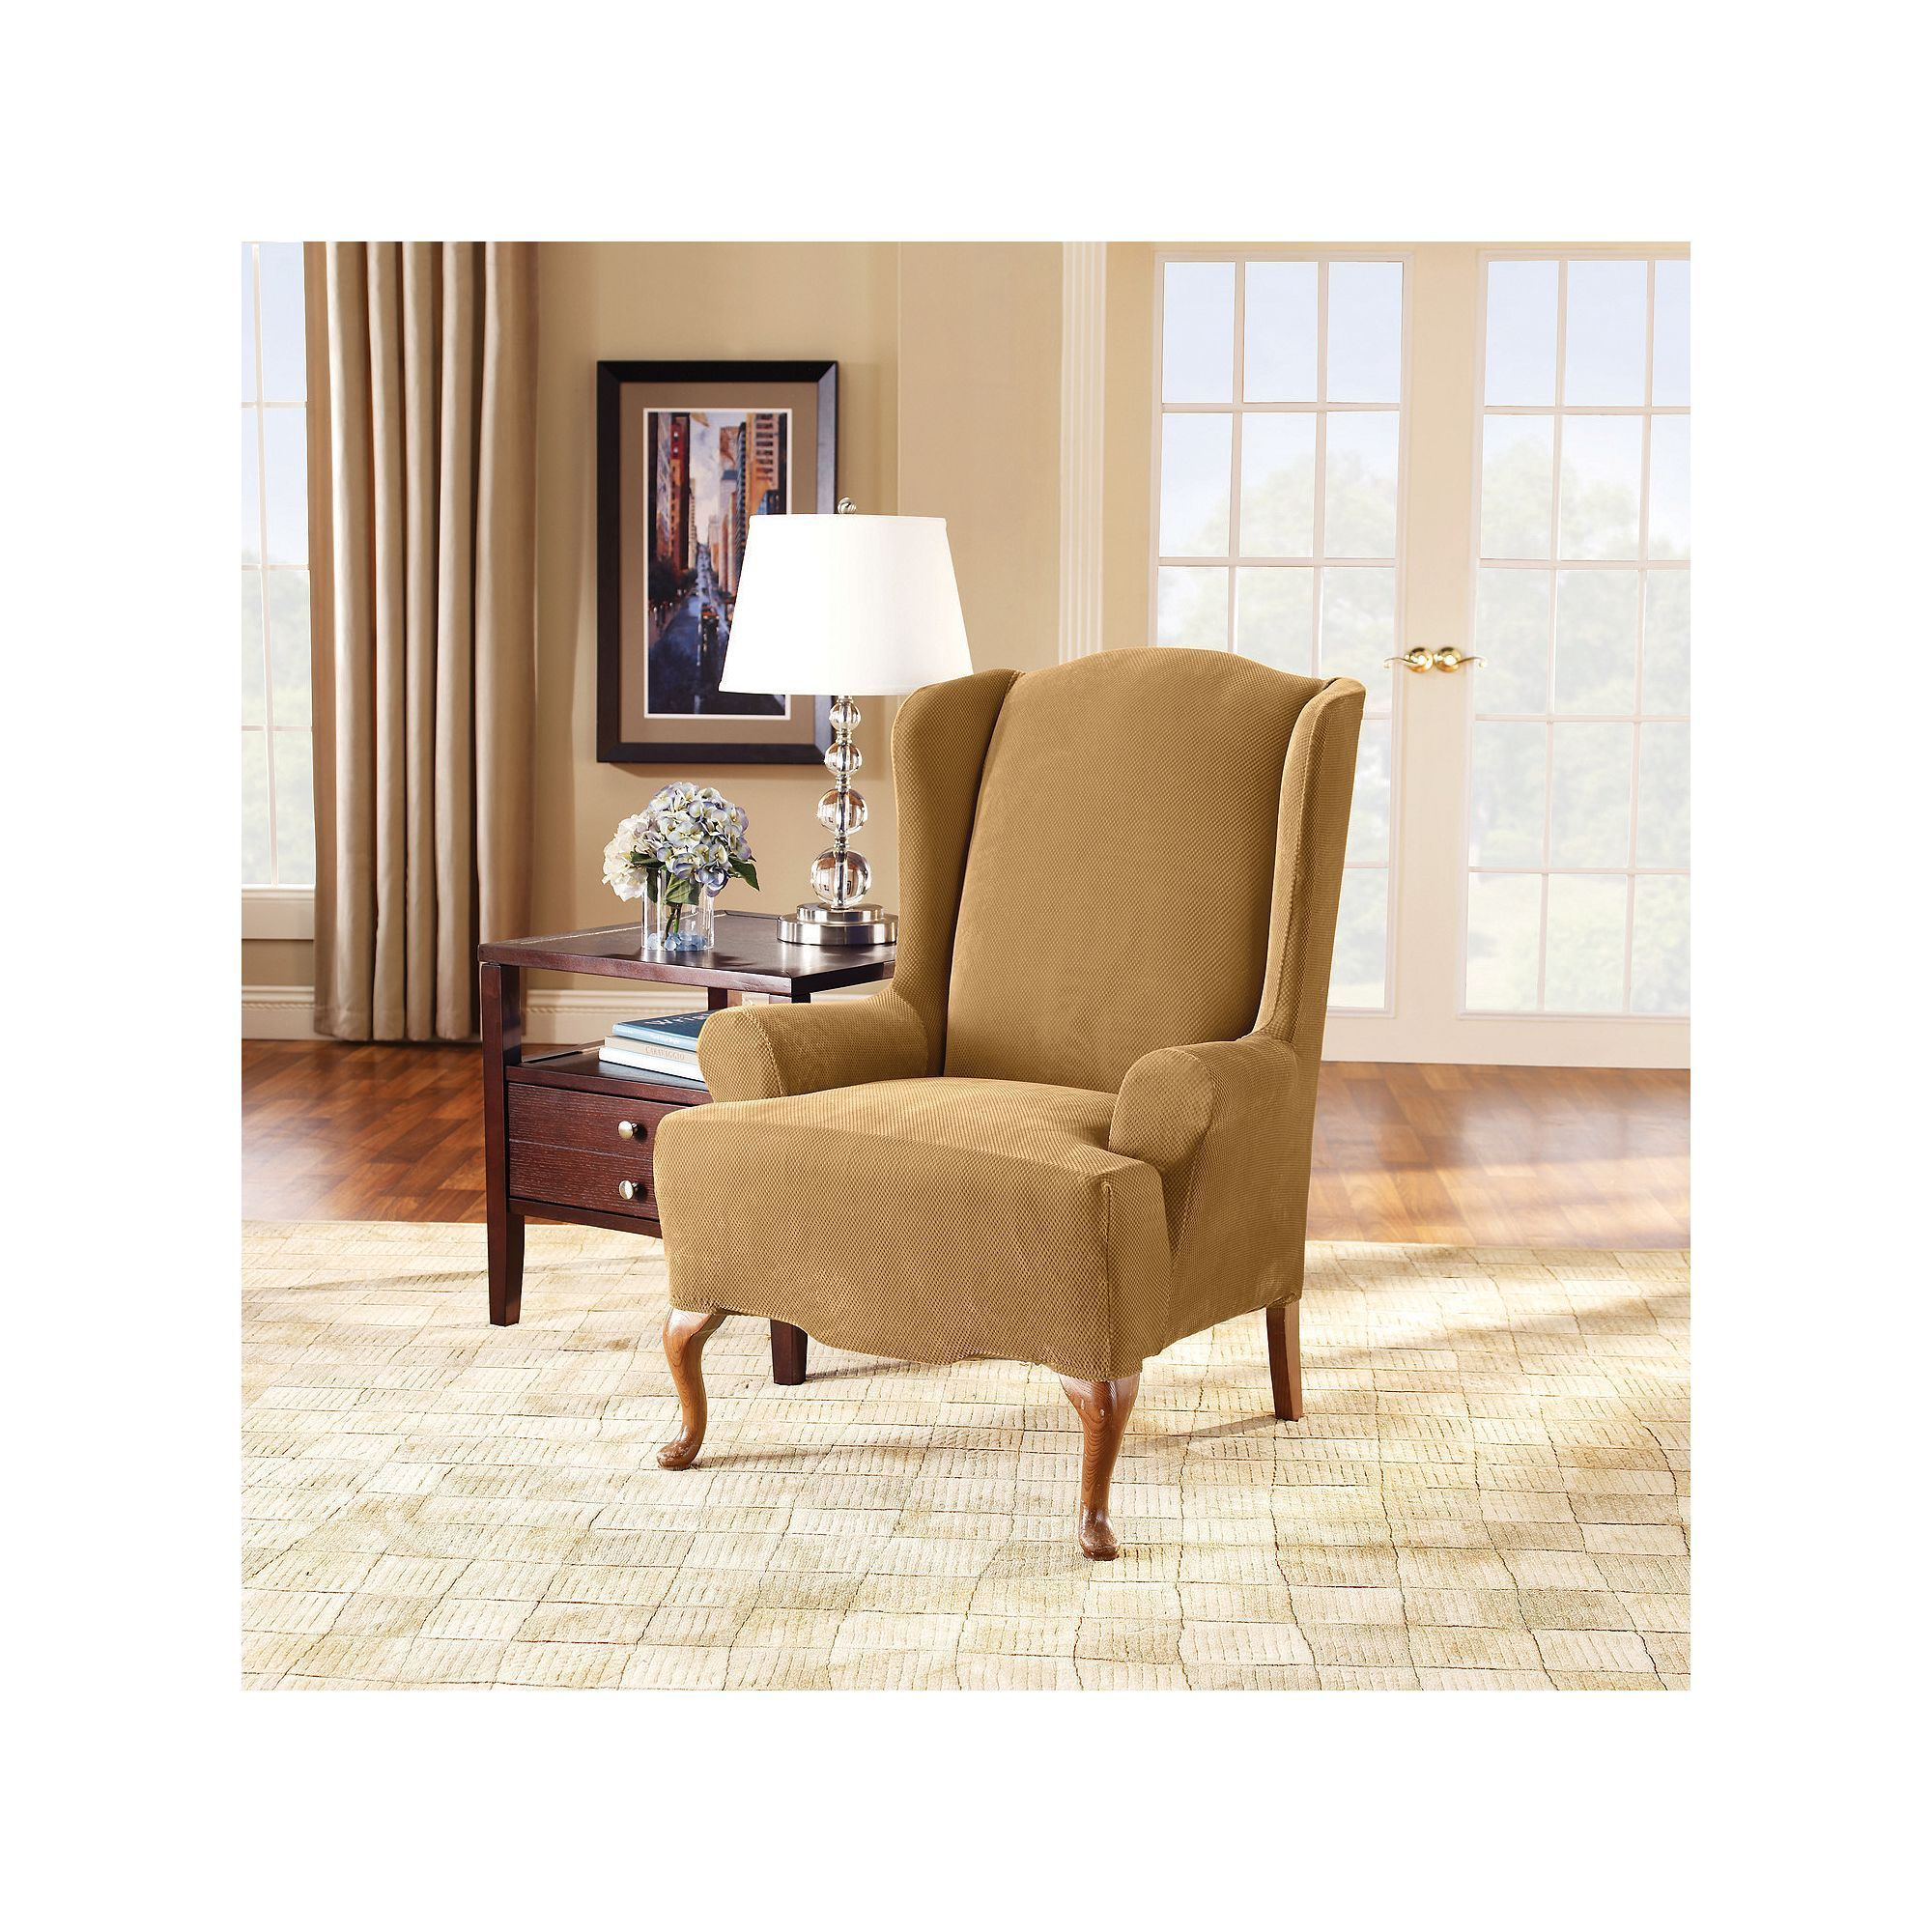 Sure Fit Soft Suede Shorty Dining Room Chair Slipcover Gorgeous Sure Fit Stretch Pique Wing Chair Slipcover Yellow  Chair Design Inspiration